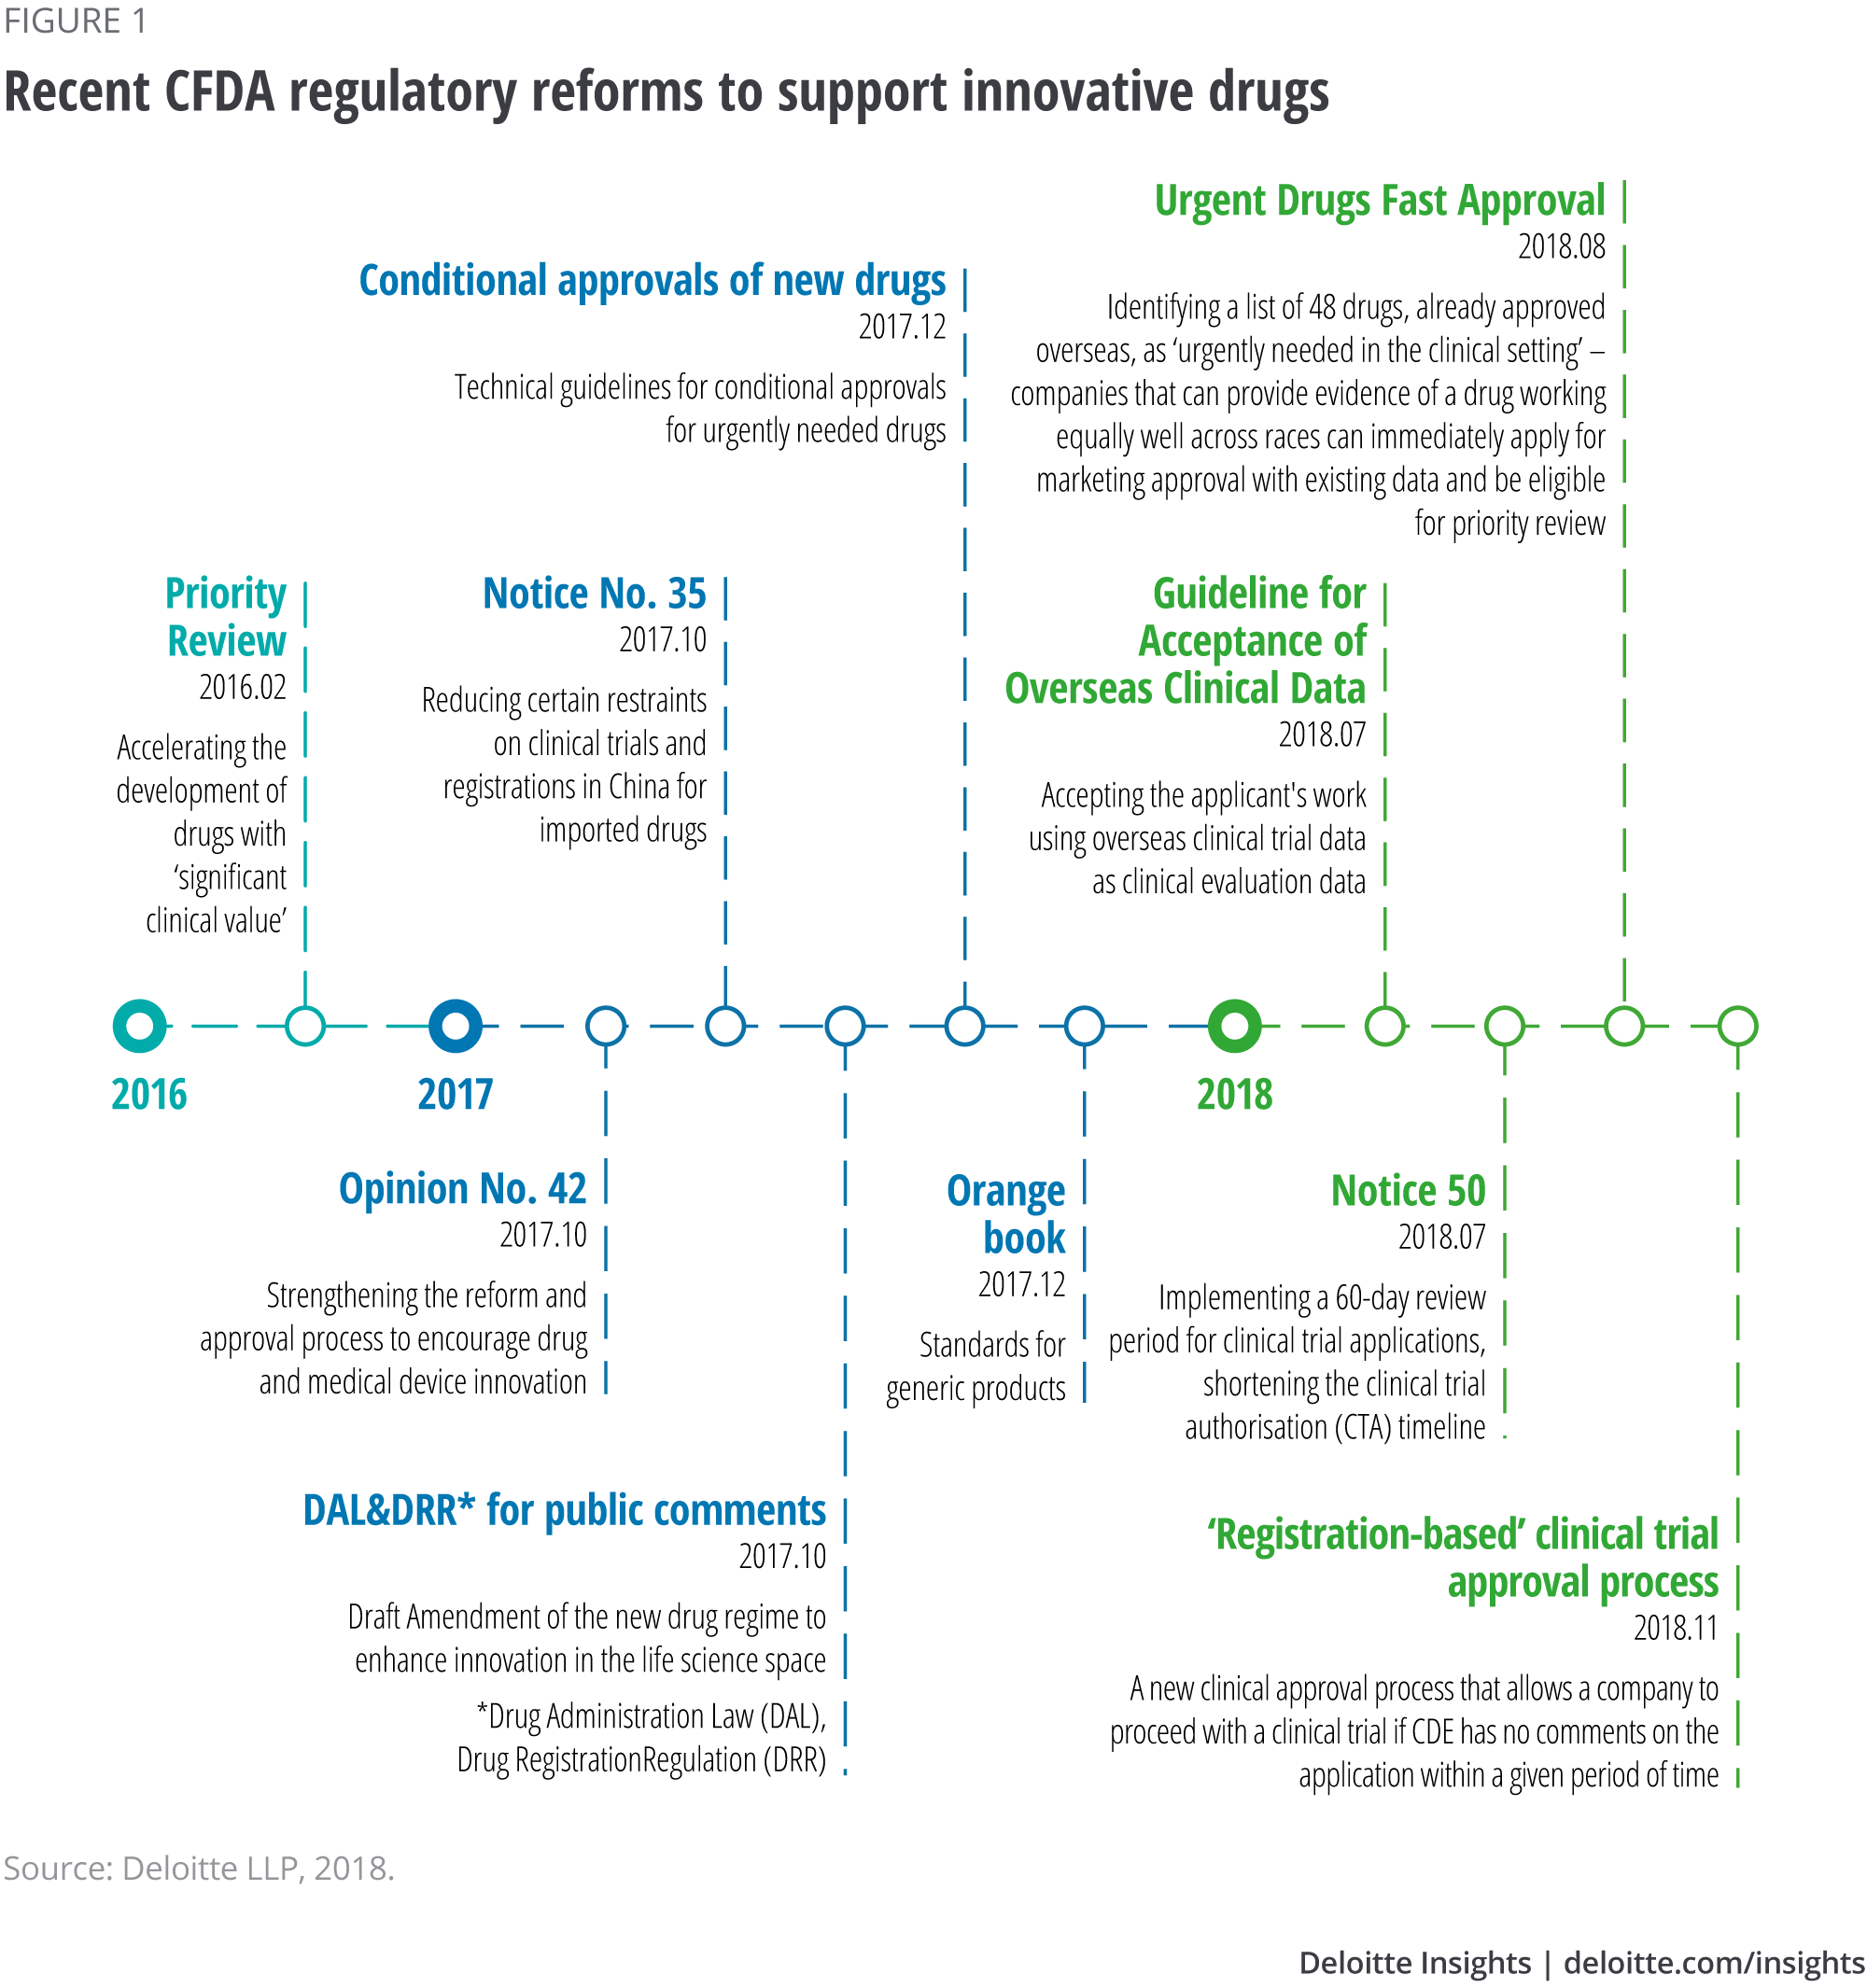 Regulatory changes in China's biopharma market | Deloitte Insights